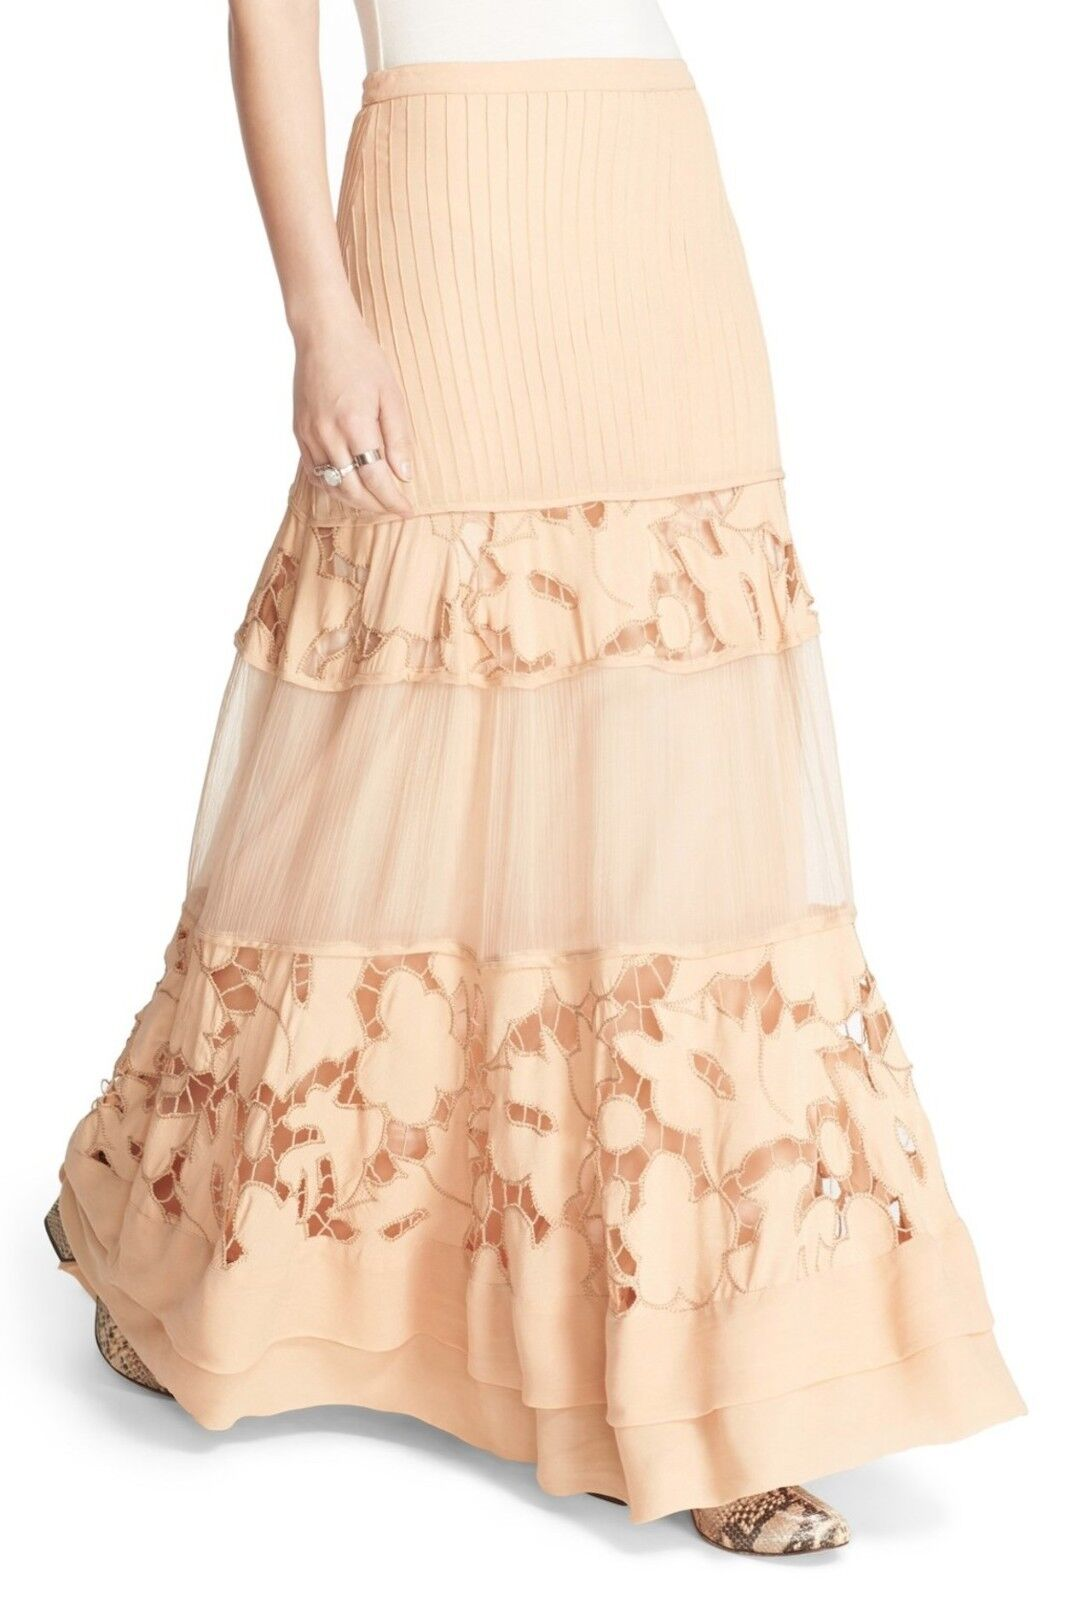 Free People To Put It Wildly Lace Inset Maxi Skirt Peach  0 4  248 NWT OB527323